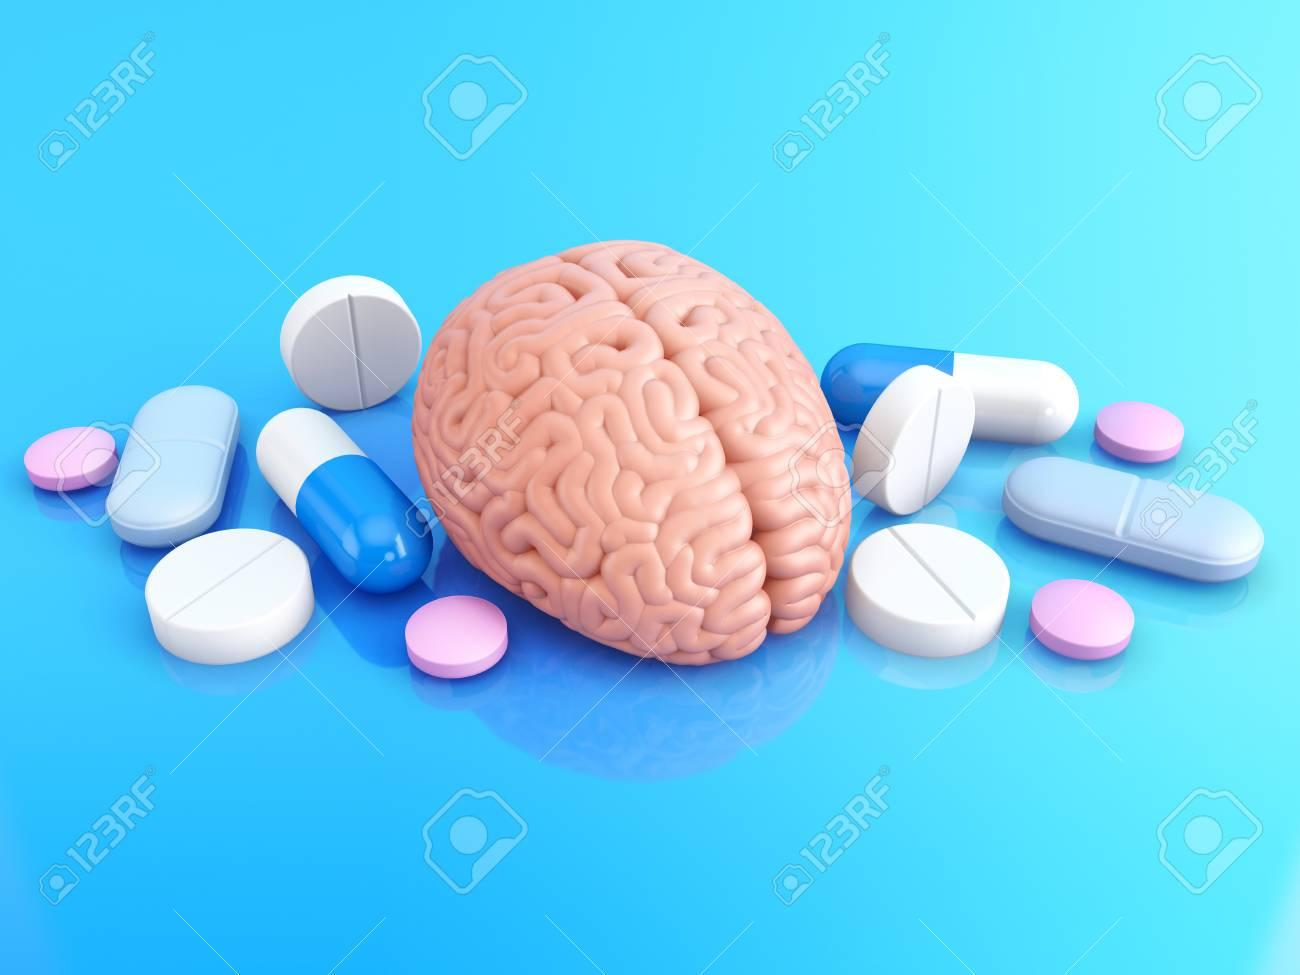 C:\Users\Stefan\Downloads\99020373-model-of-human-brain-and-pills-to-improve-memory-3d-illustration-.jpg